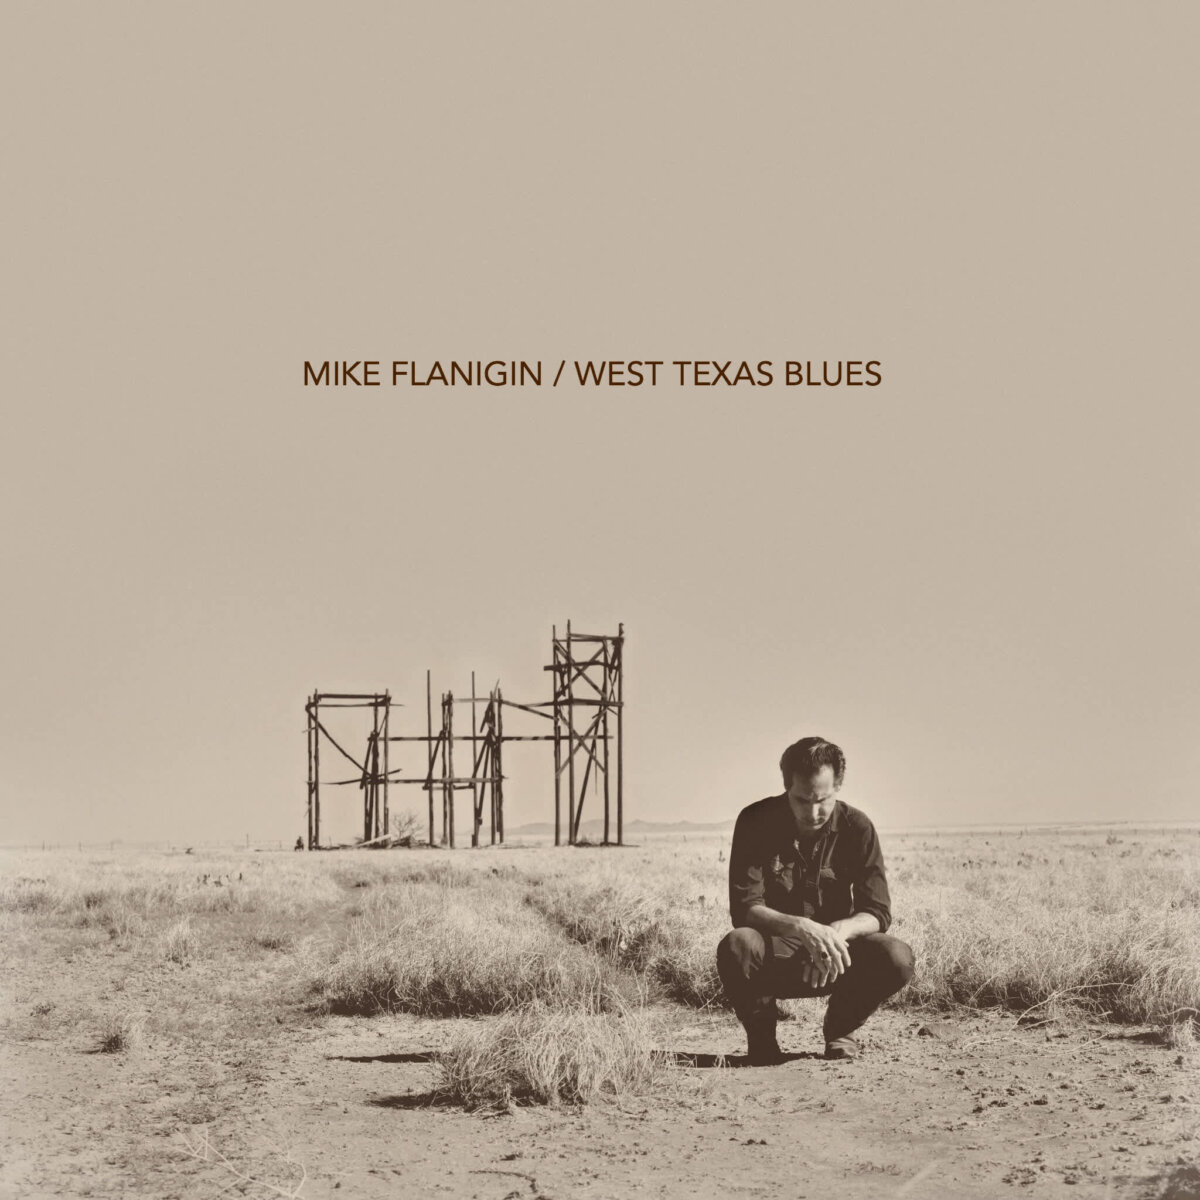 MIKE FLANIGIN - WEST TEXAS BLUES